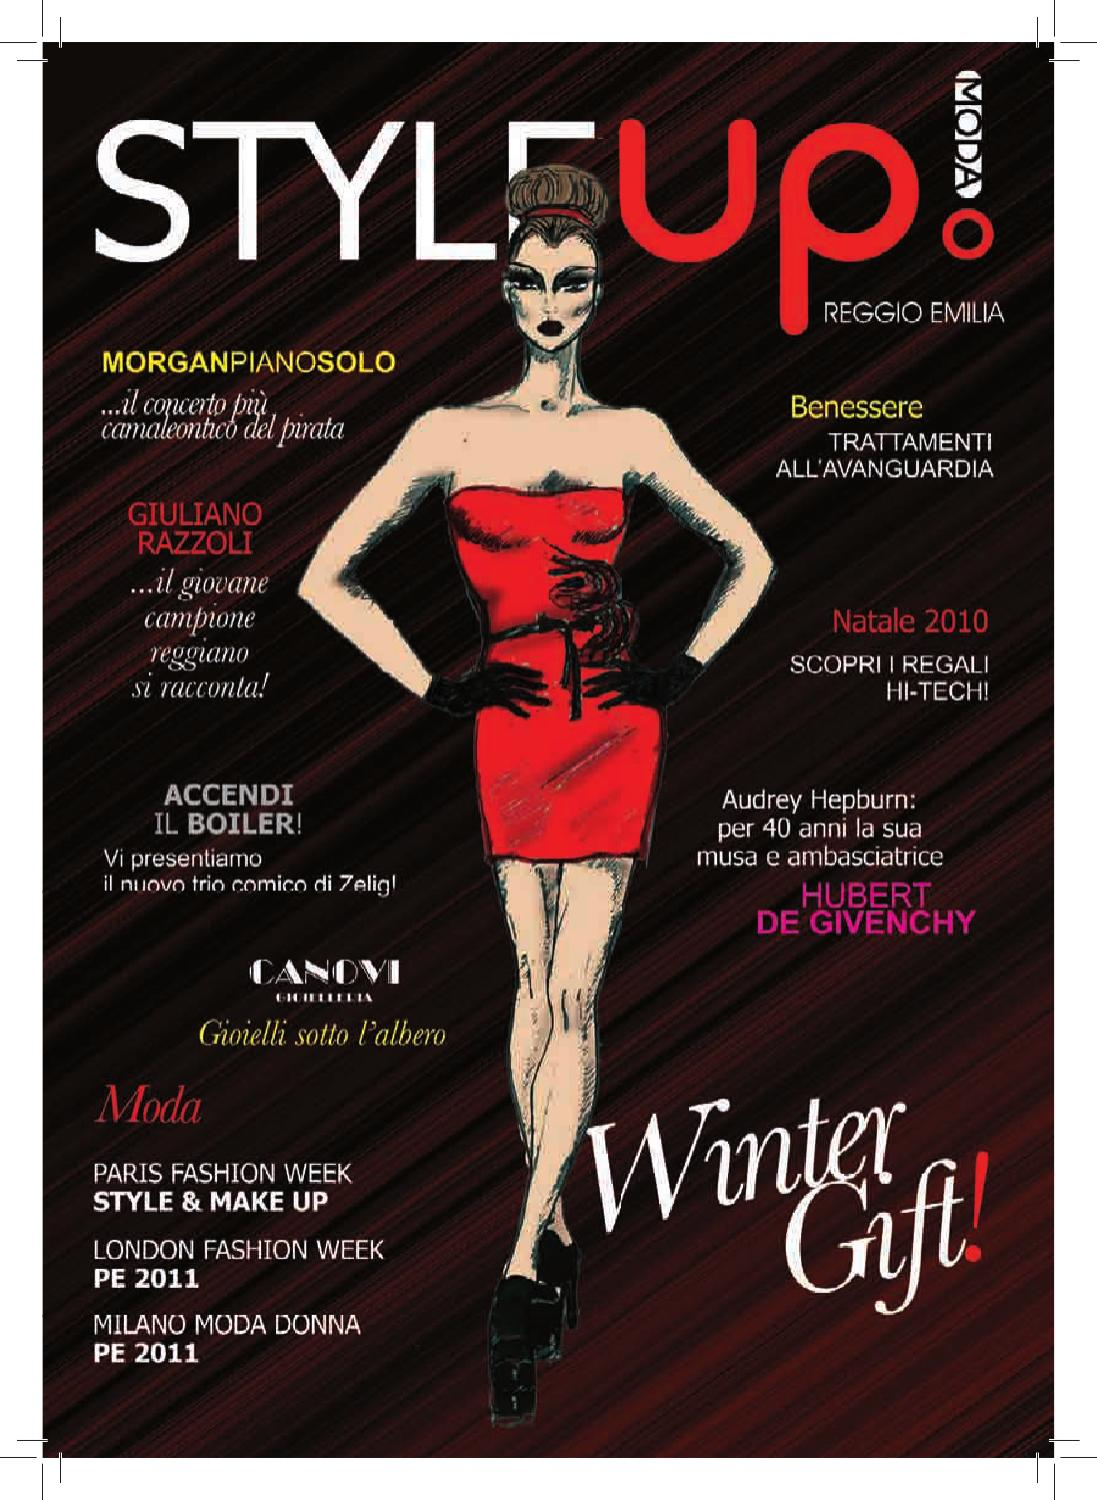 Style Up! Moda 6 Reggio Emilia by StyleUp! - issuu dac8ce50730